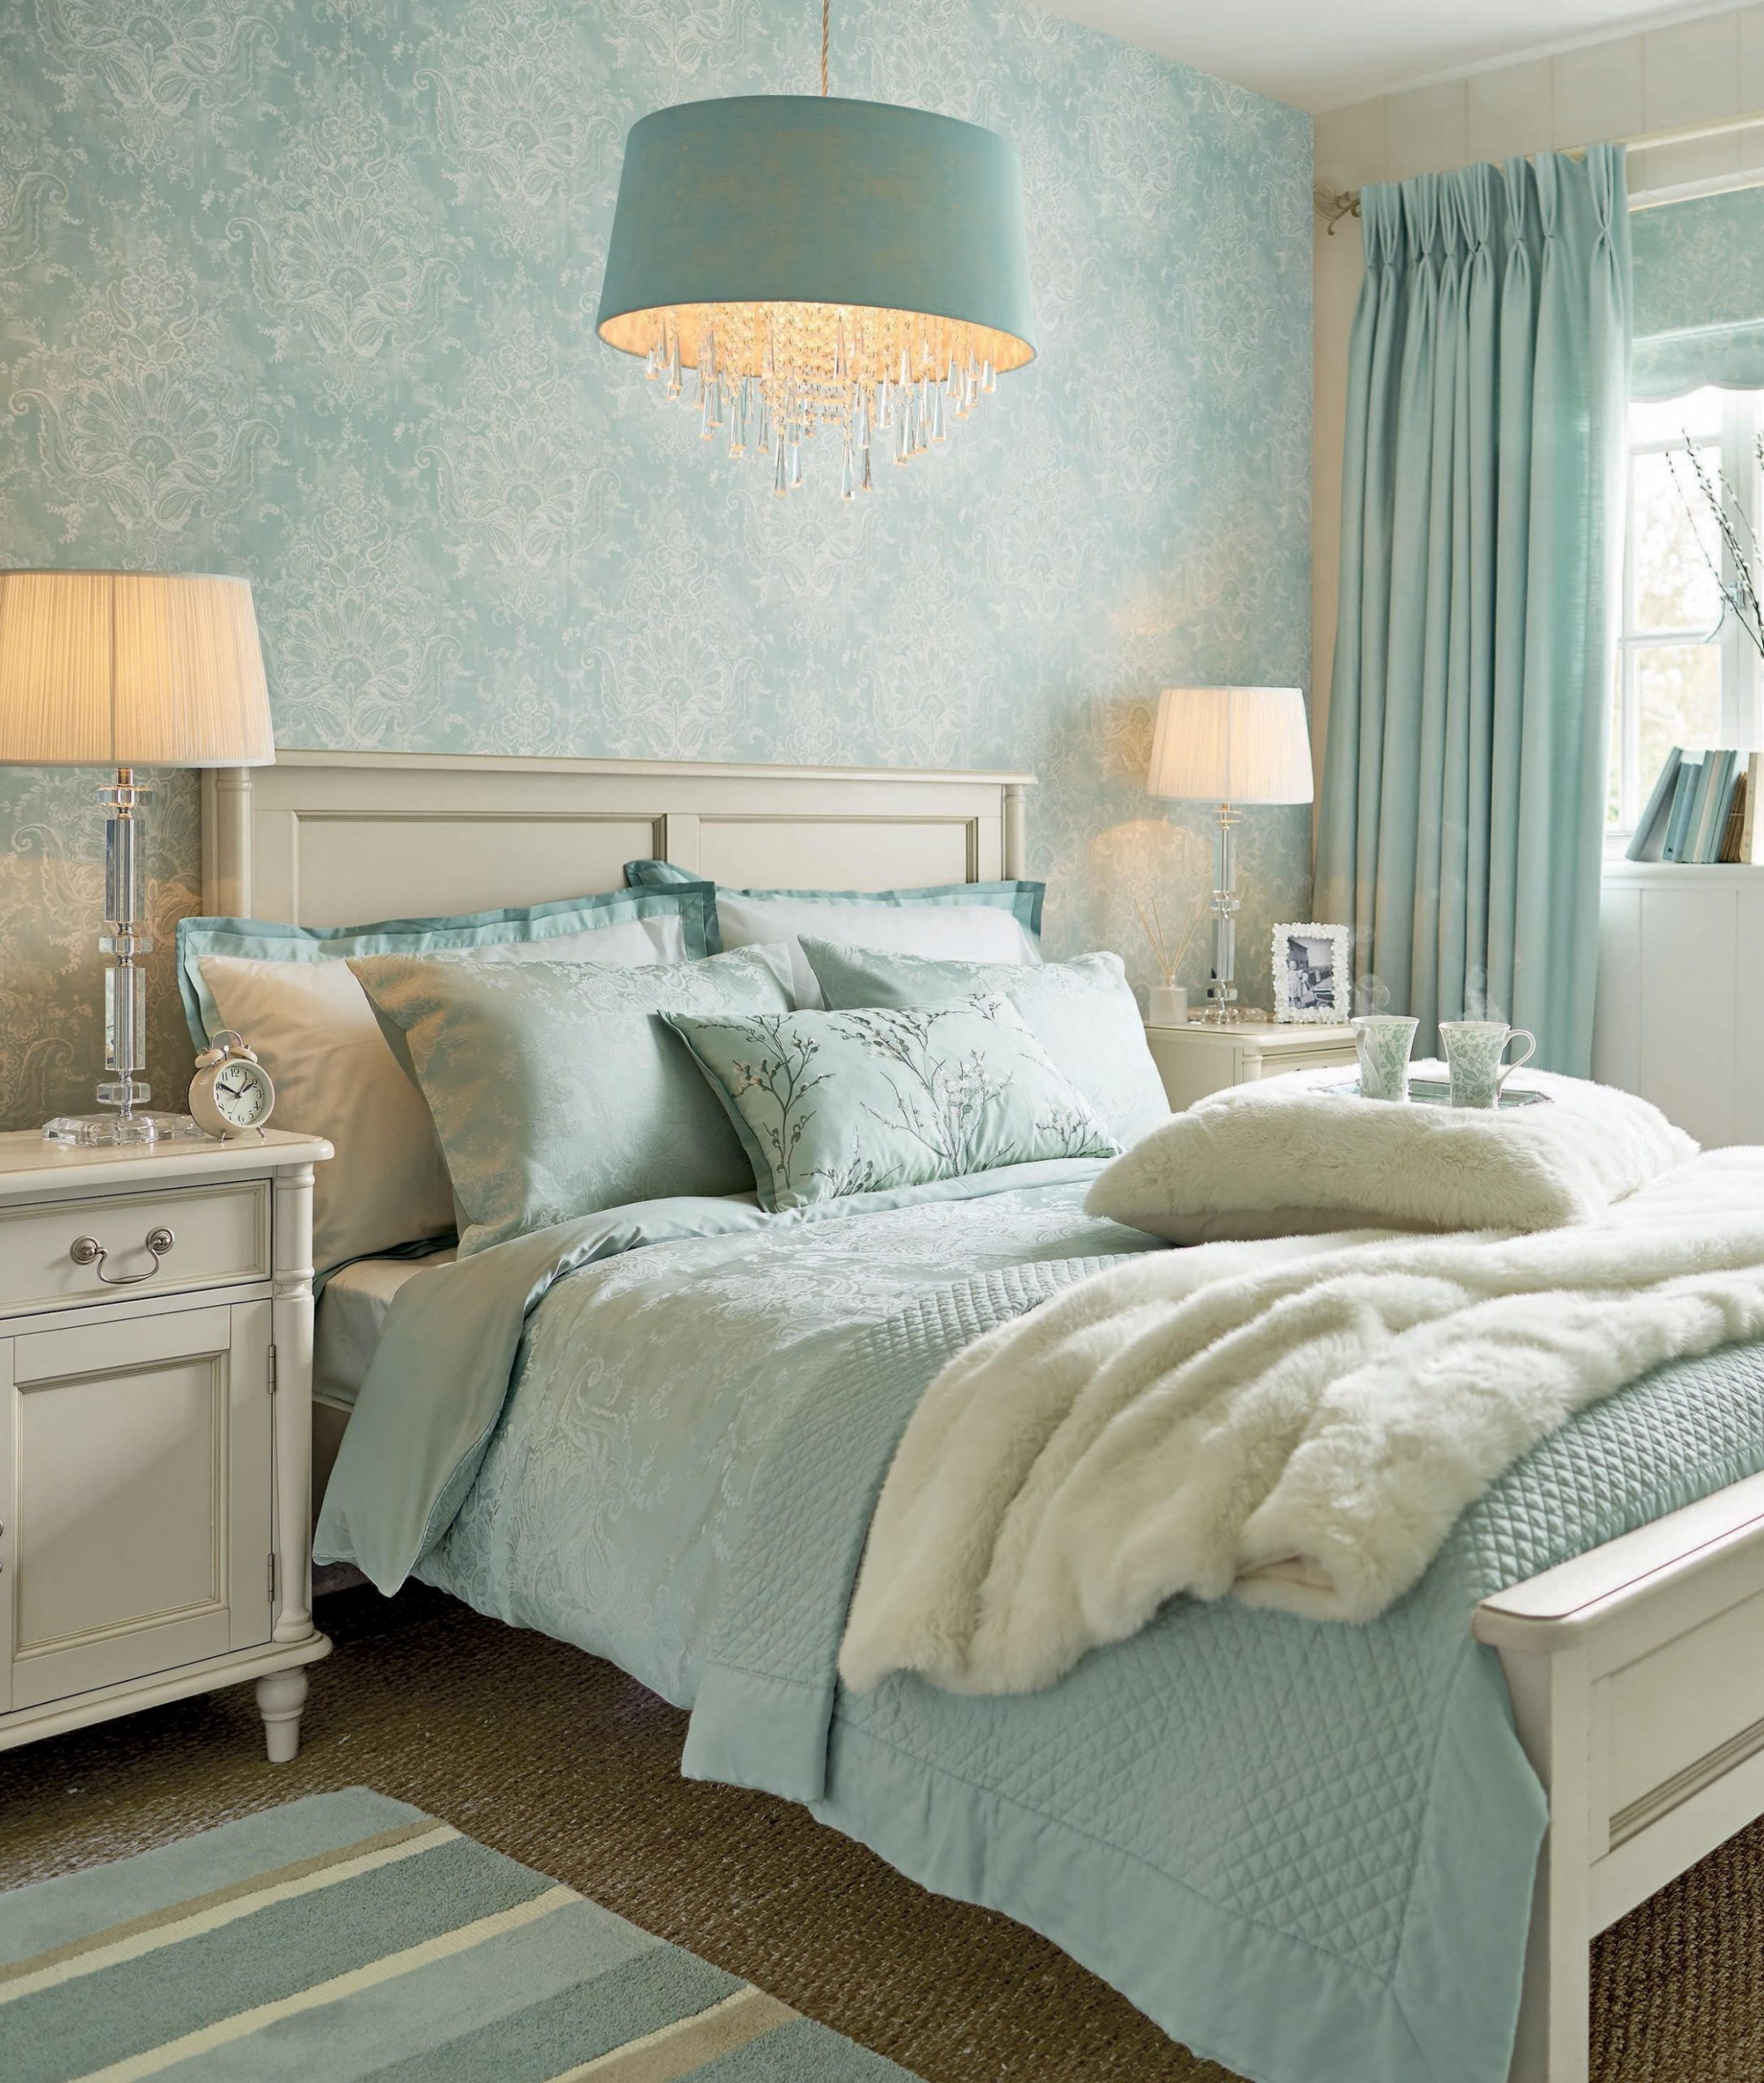 Duck egg bedroom  Blue bedroom, Bedroom design, Bedroom colors - Bedroom Ideas Using Duck Egg Blue